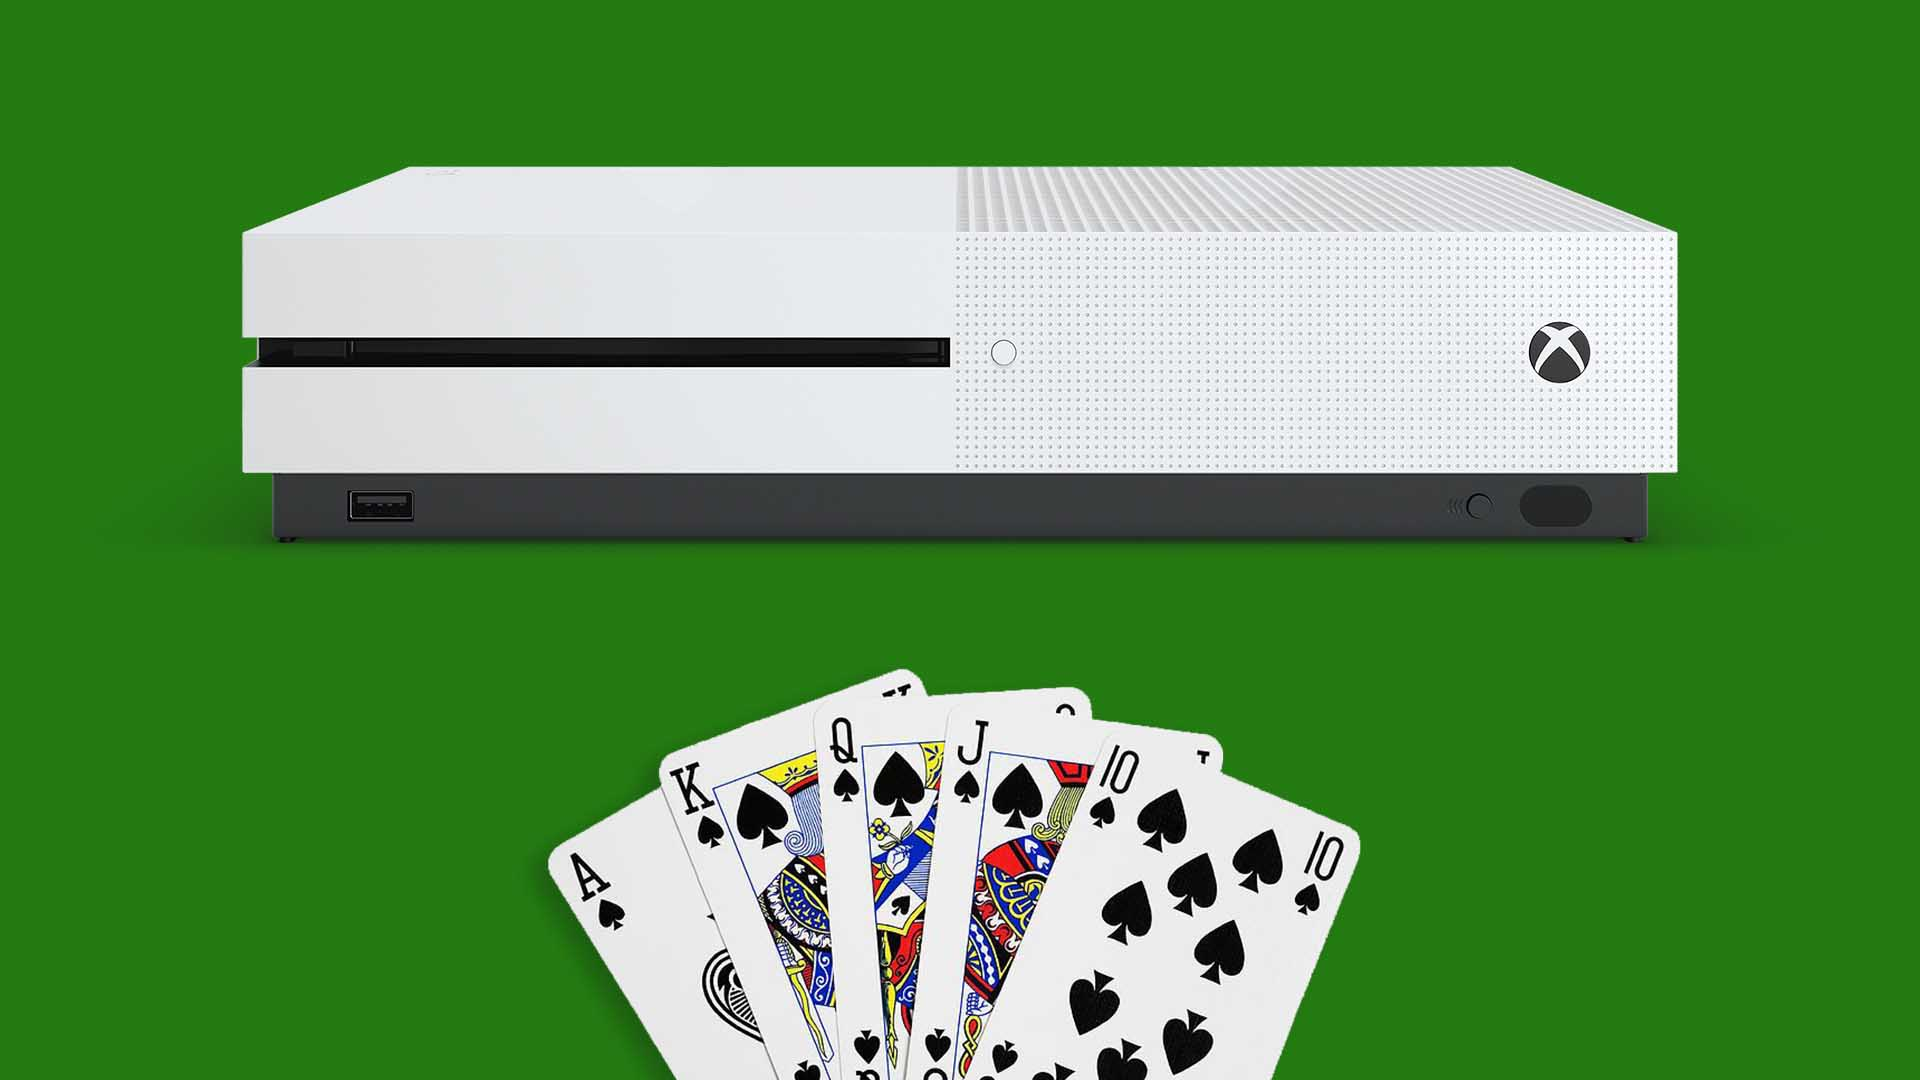 Best Card Games on Xbox One